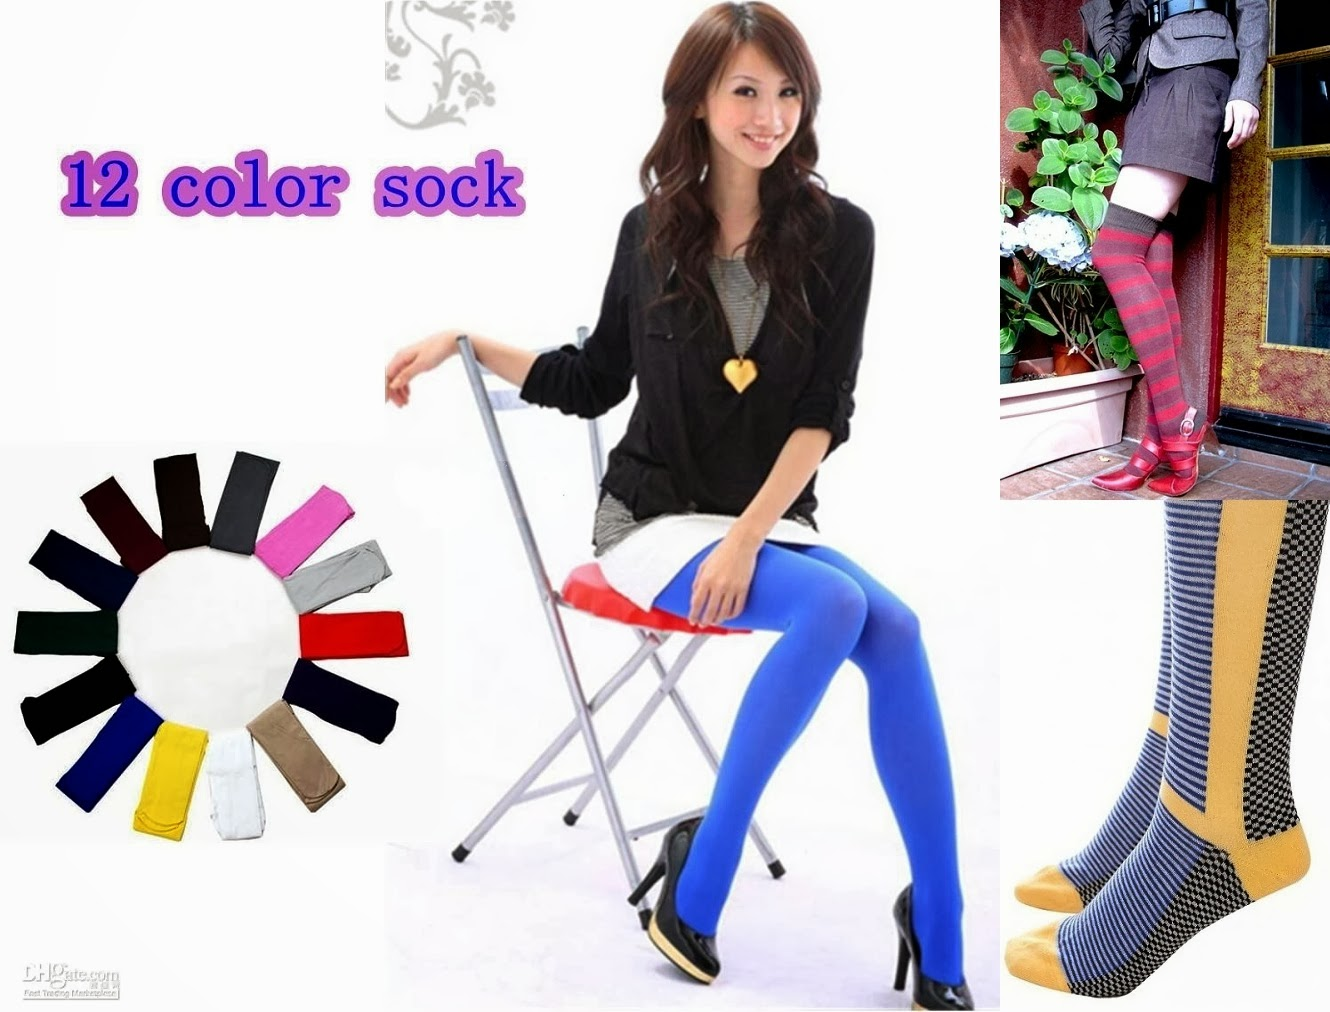 Hosiery and Socks Manufacture and Wholesale Business